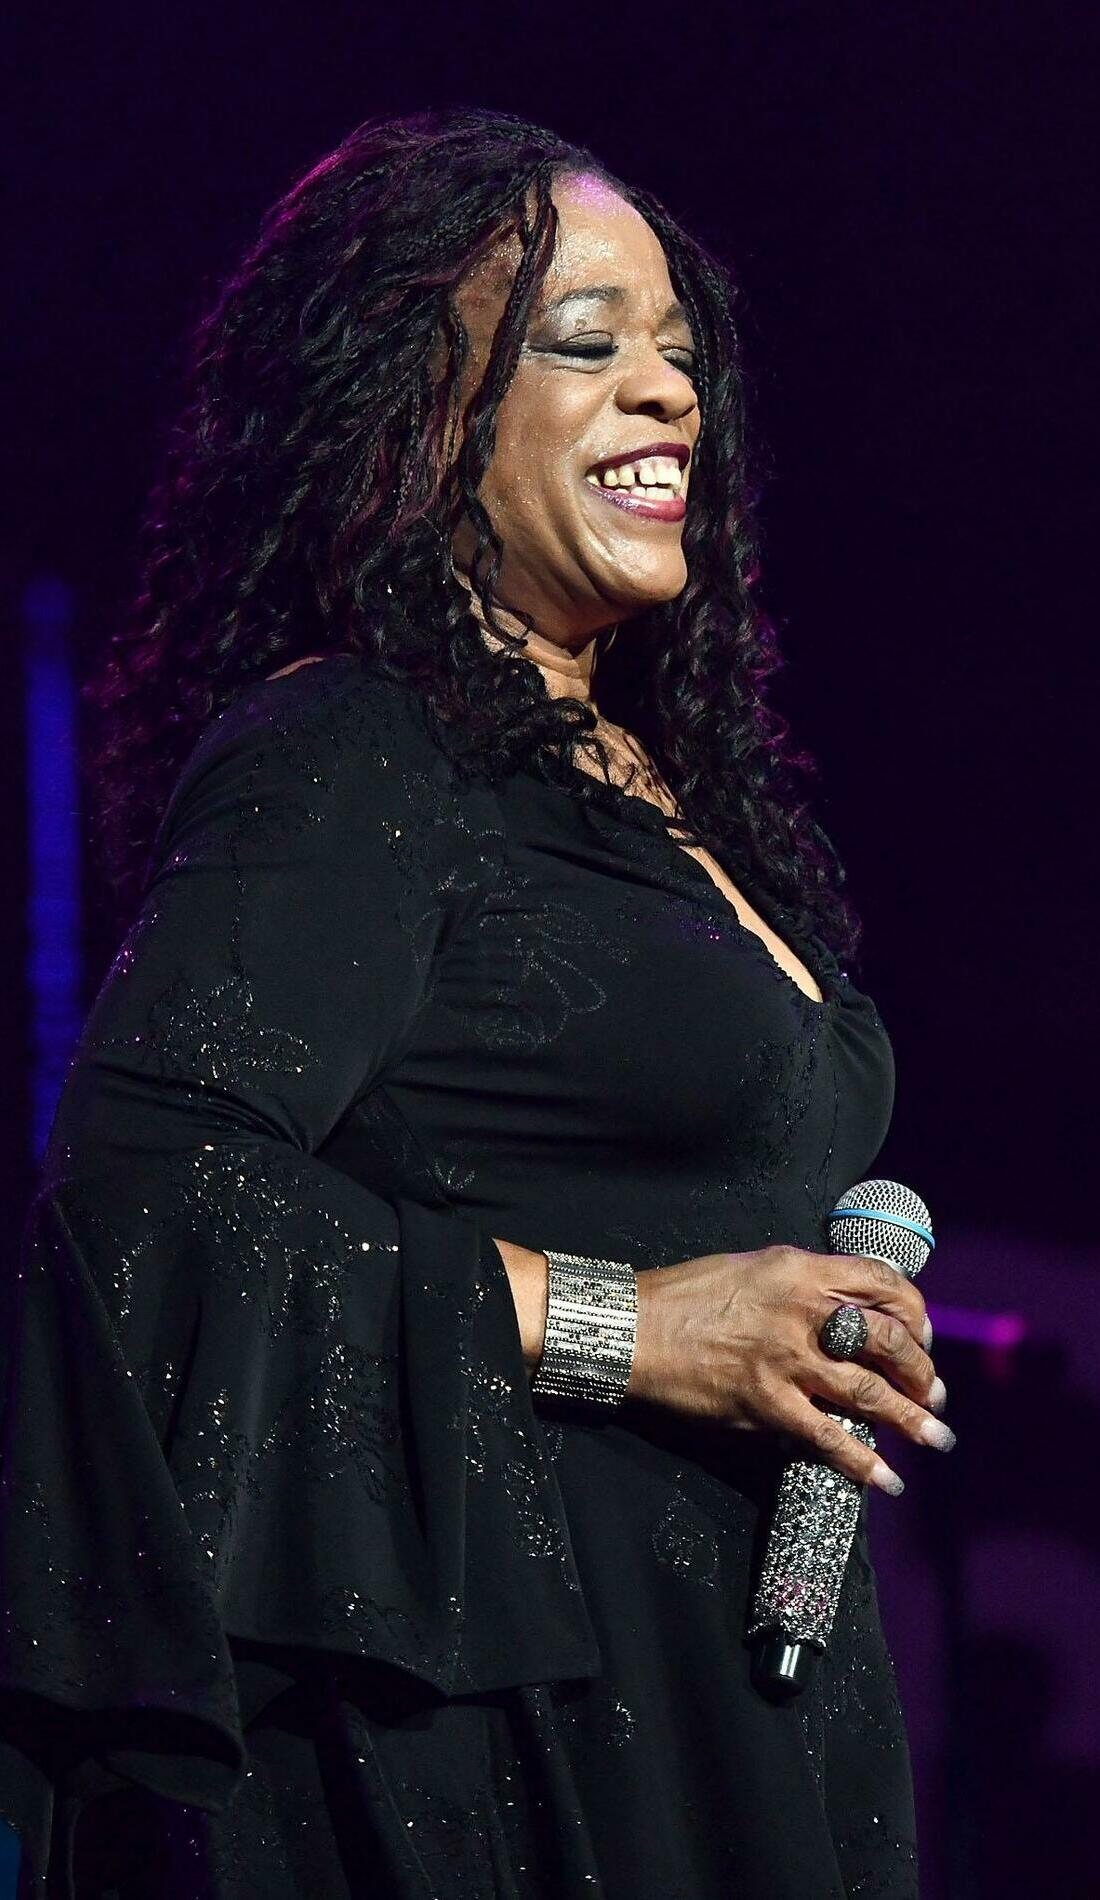 A Evelyn Champagne King live event